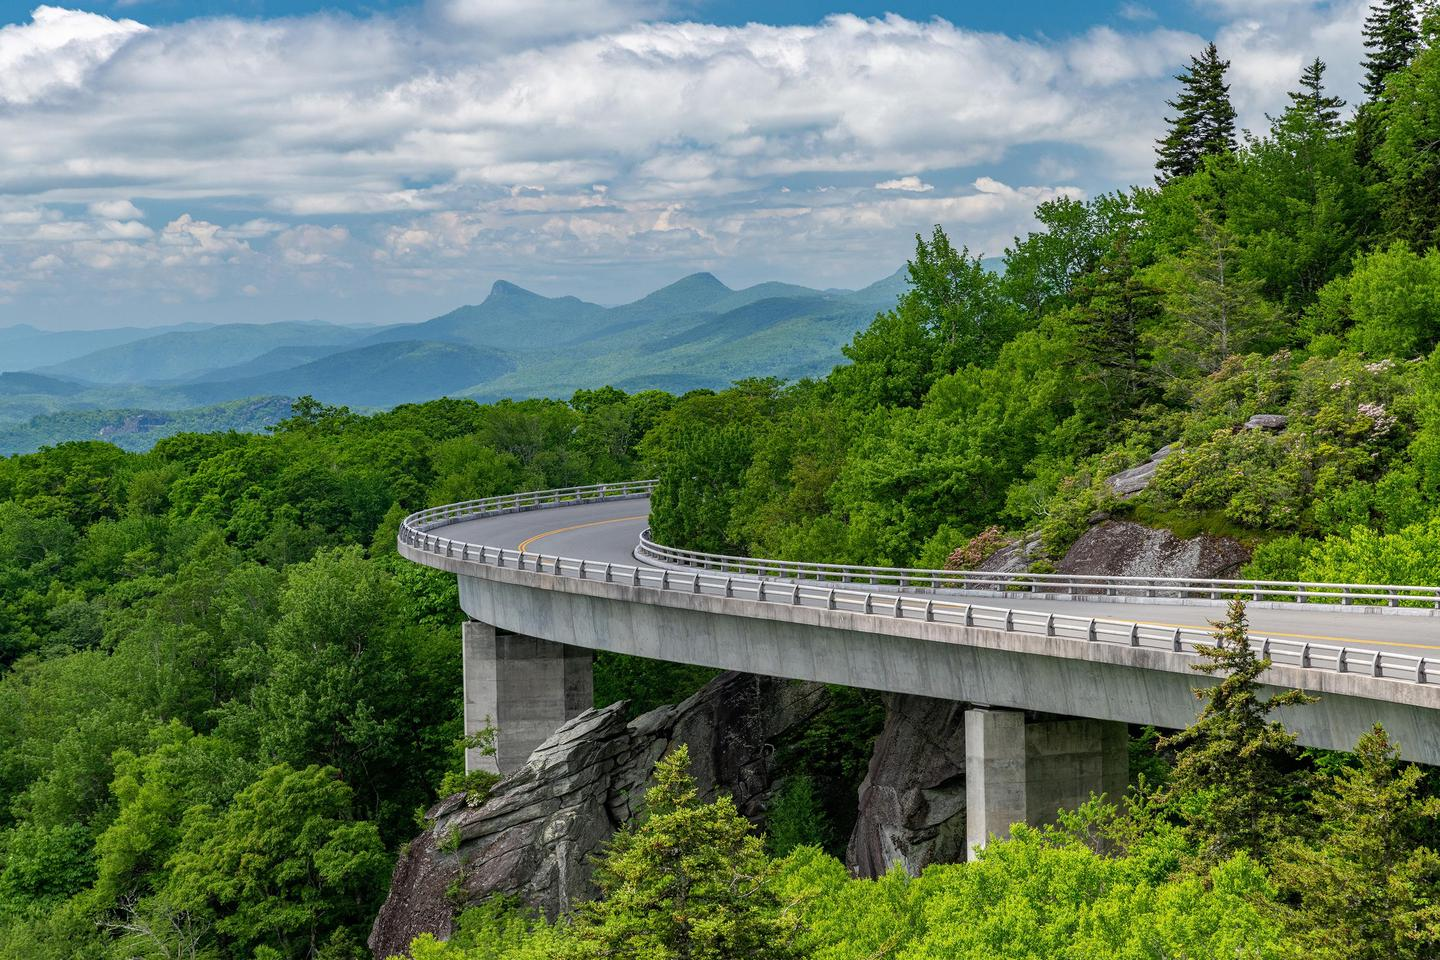 Linn Cove ViaductLinn Cove Viaduct is one of the most iconic features of the Blue Ridge Parkway